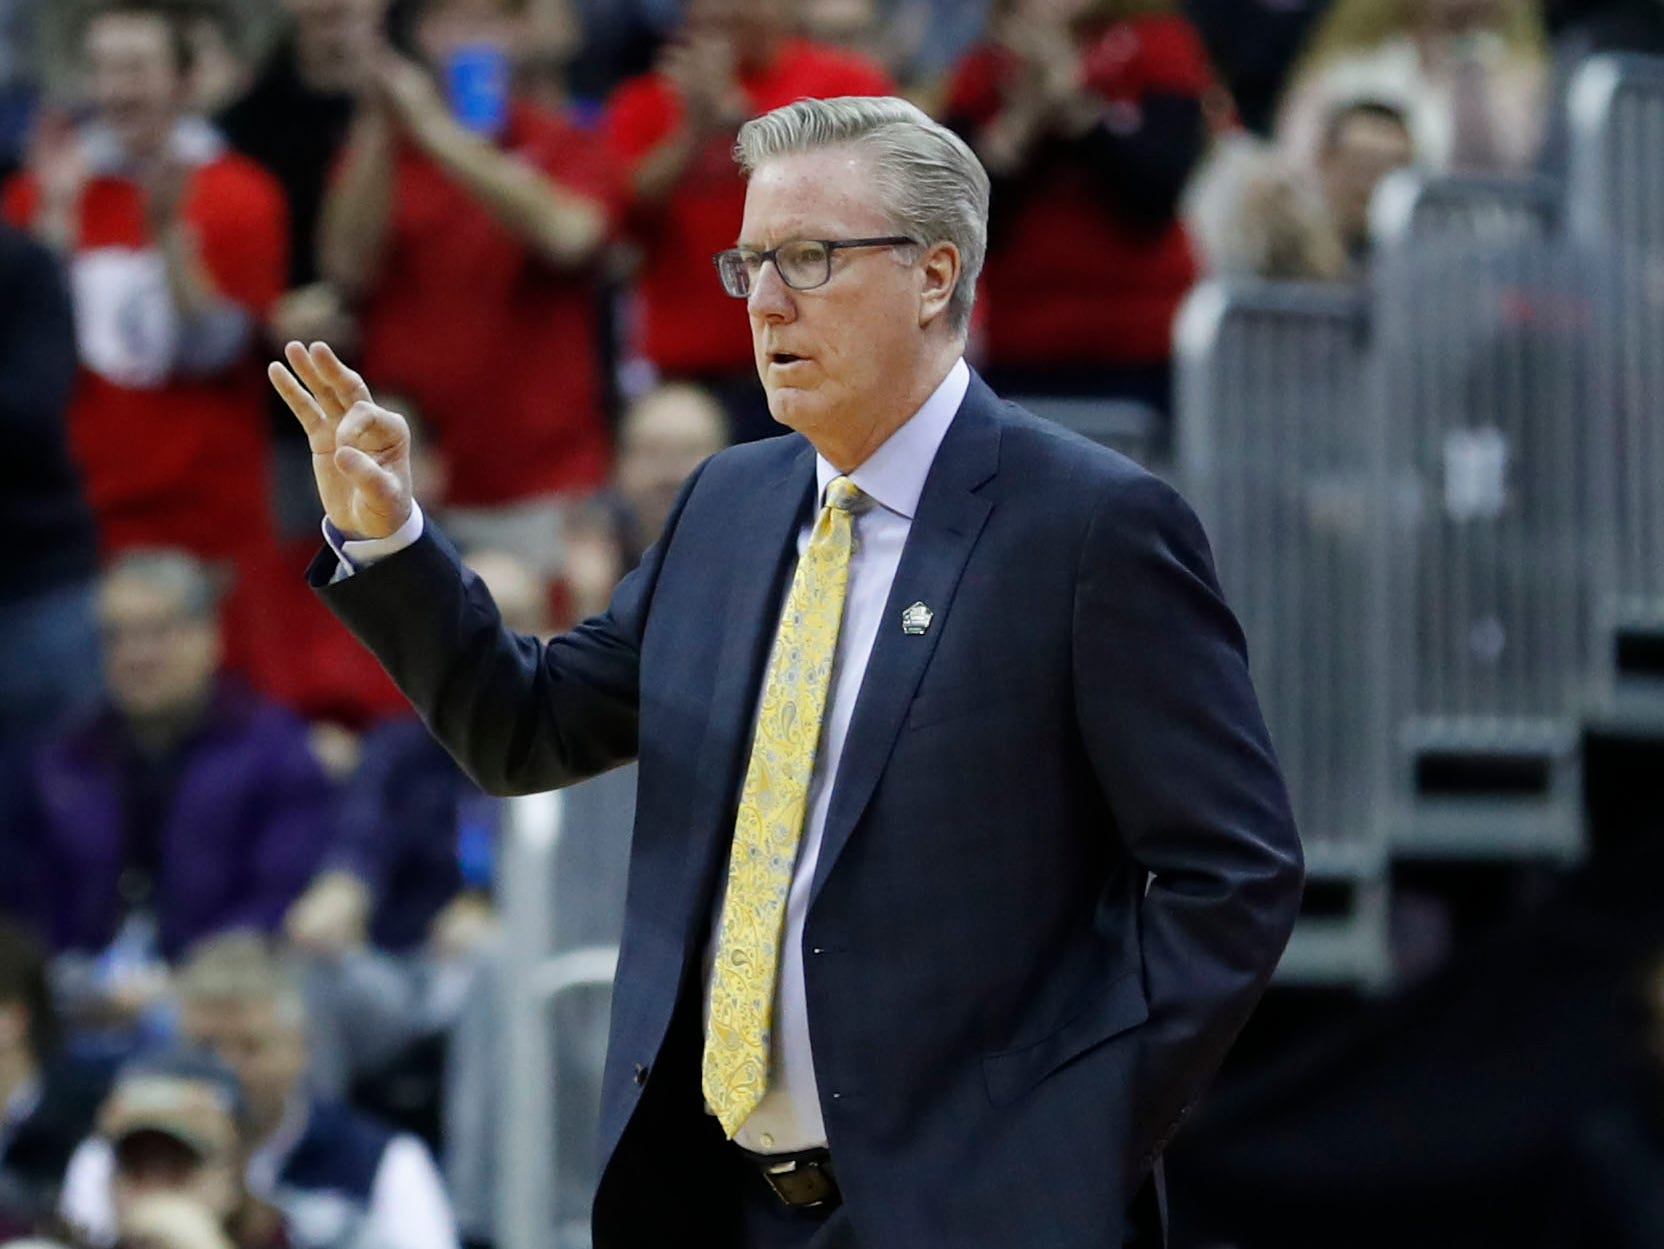 Mar 22, 2019; Columbus, OH, USA; Iowa Hawkeyes head coach Fran McCaffery reacts to a play in the first half against the Cincinnati Bearcats  in the first round of the 2019 NCAA Tournament at Nationwide Arena. Mandatory Credit: Rick Osentoski-USA TODAY Sports